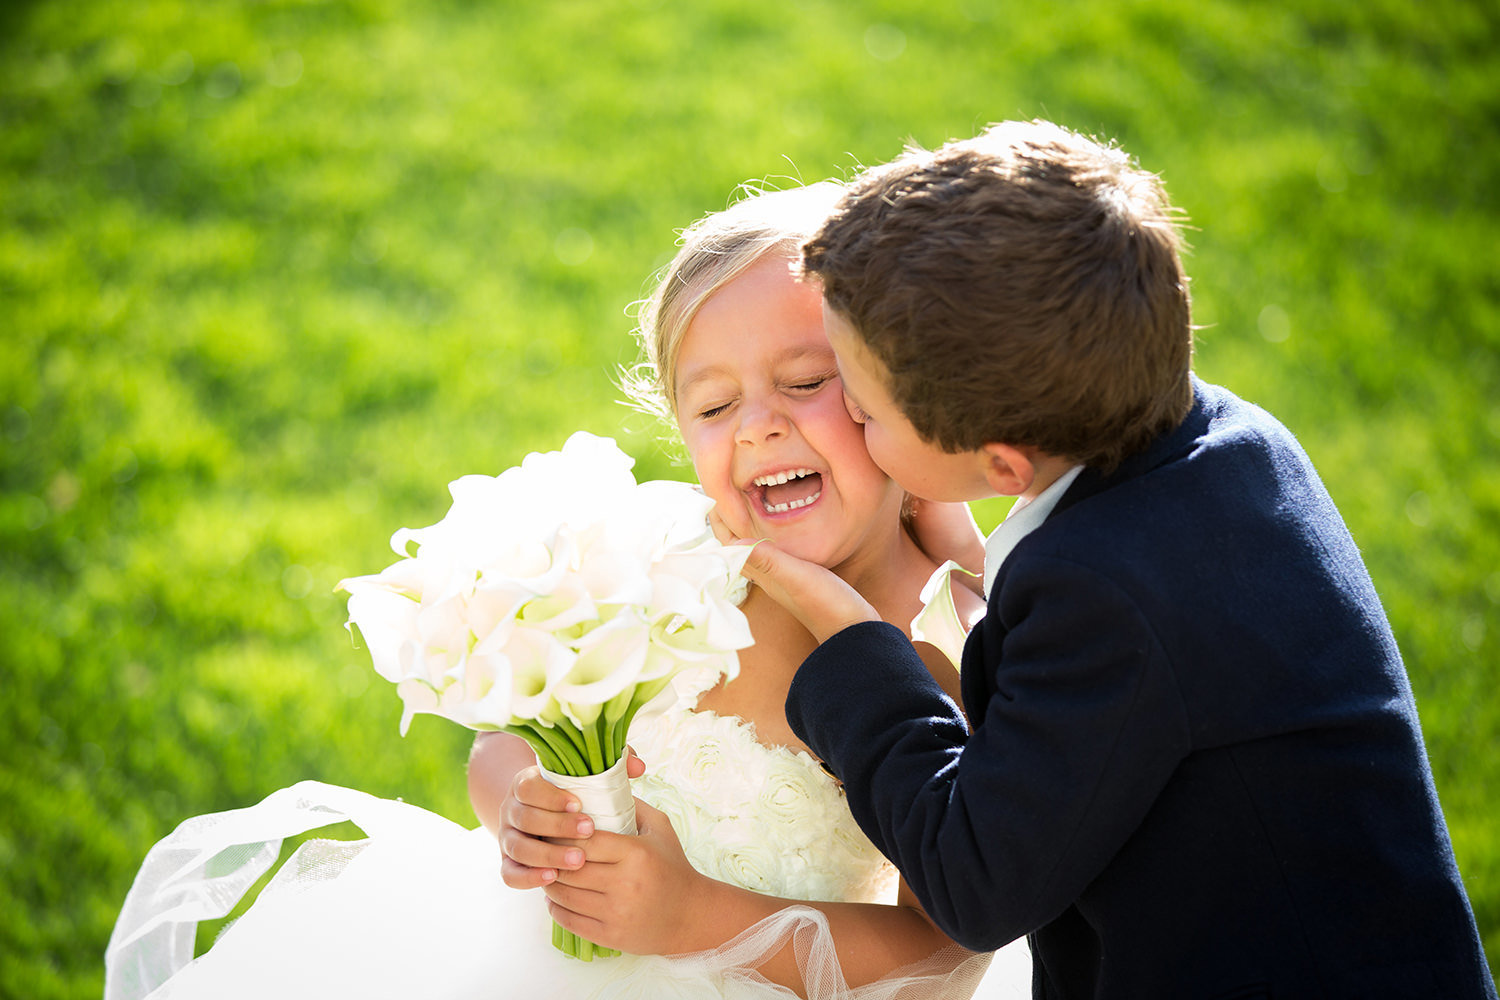 Sweet moment between the flower girl and ring bearer